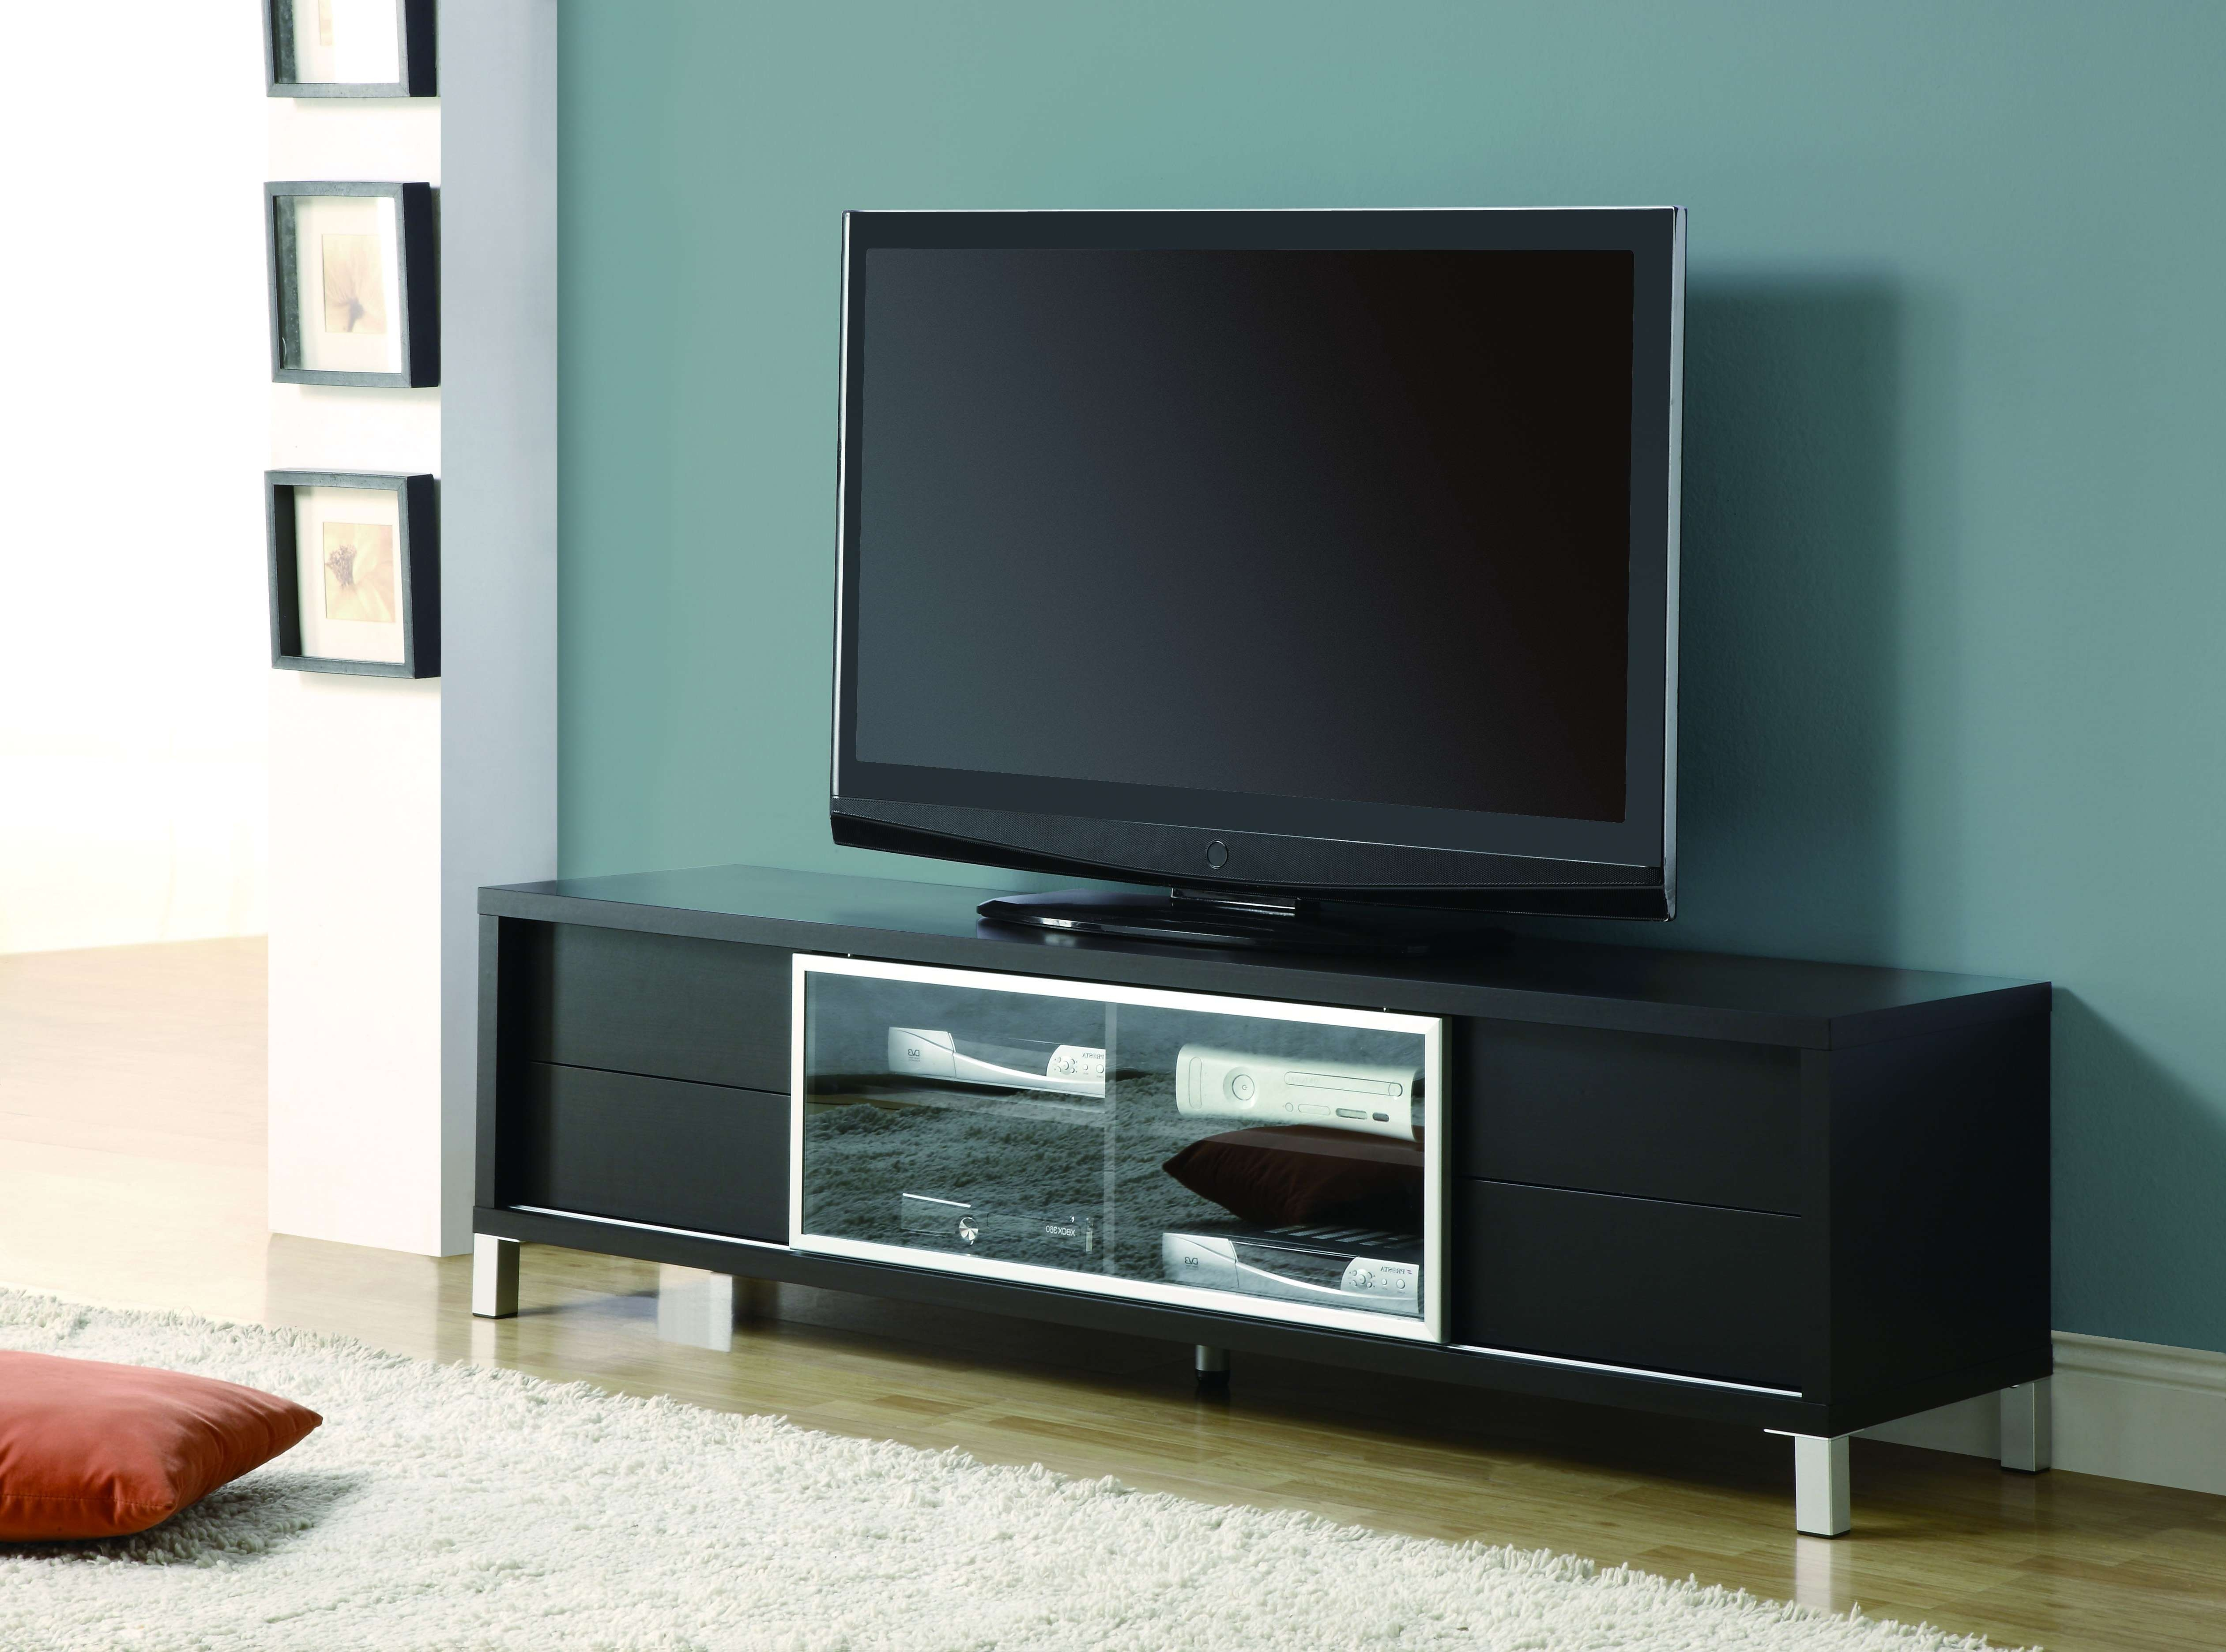 Furniture : Fancy Tv Stand Under 50 Big Lots Tv Stands Television Intended For Big Lots Tv Stands (View 6 of 15)